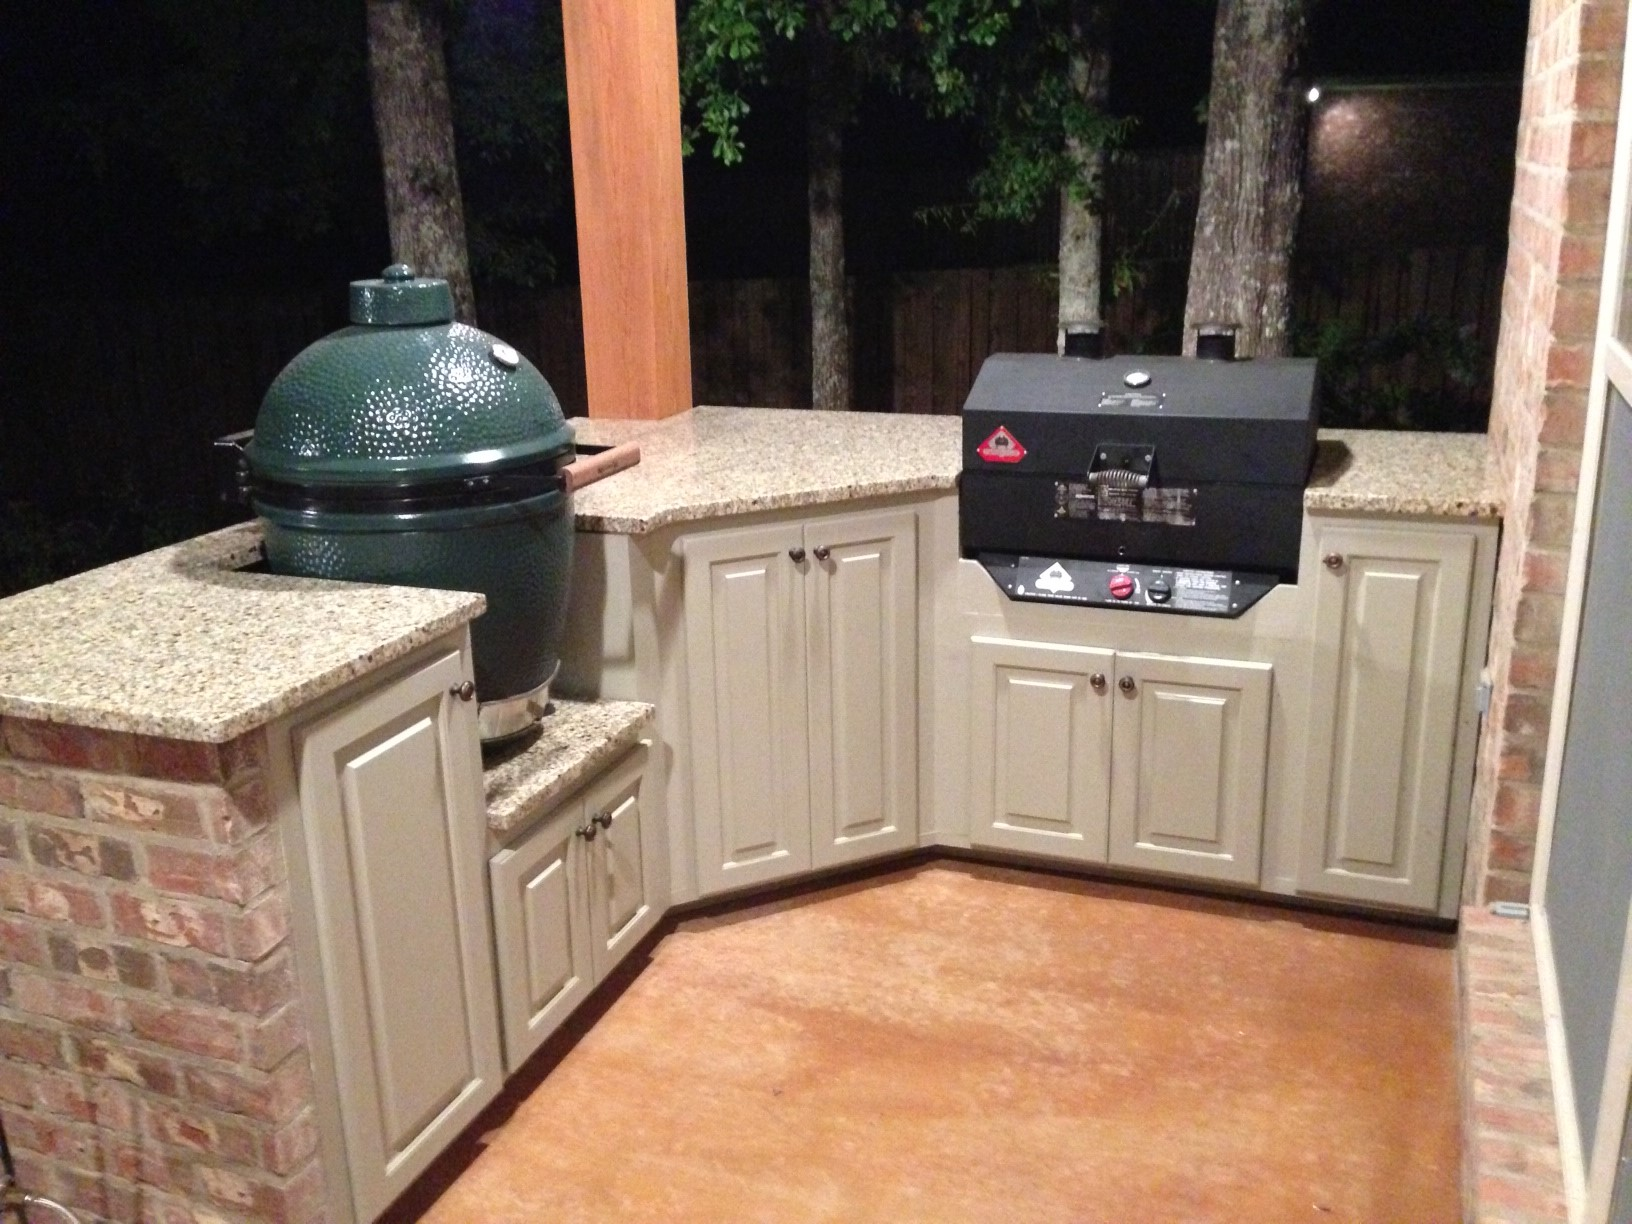 Outdoor Kitchen Finished Big Green Egg Egghead Forum The Ultimate Cooking Experience